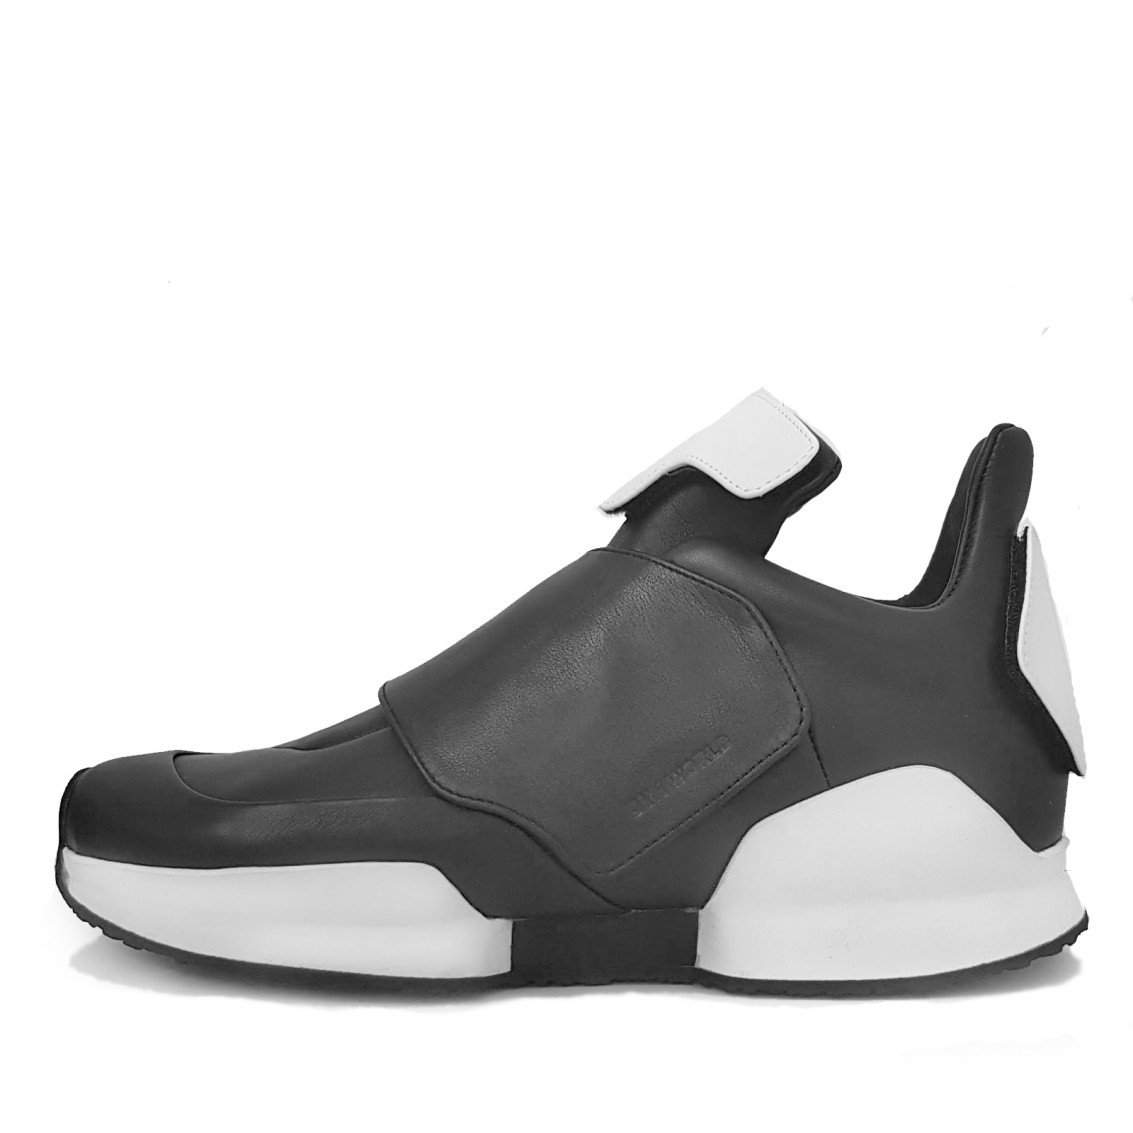 RDS PROTOTYPE LOW VERSION. First replacement details sneakers.